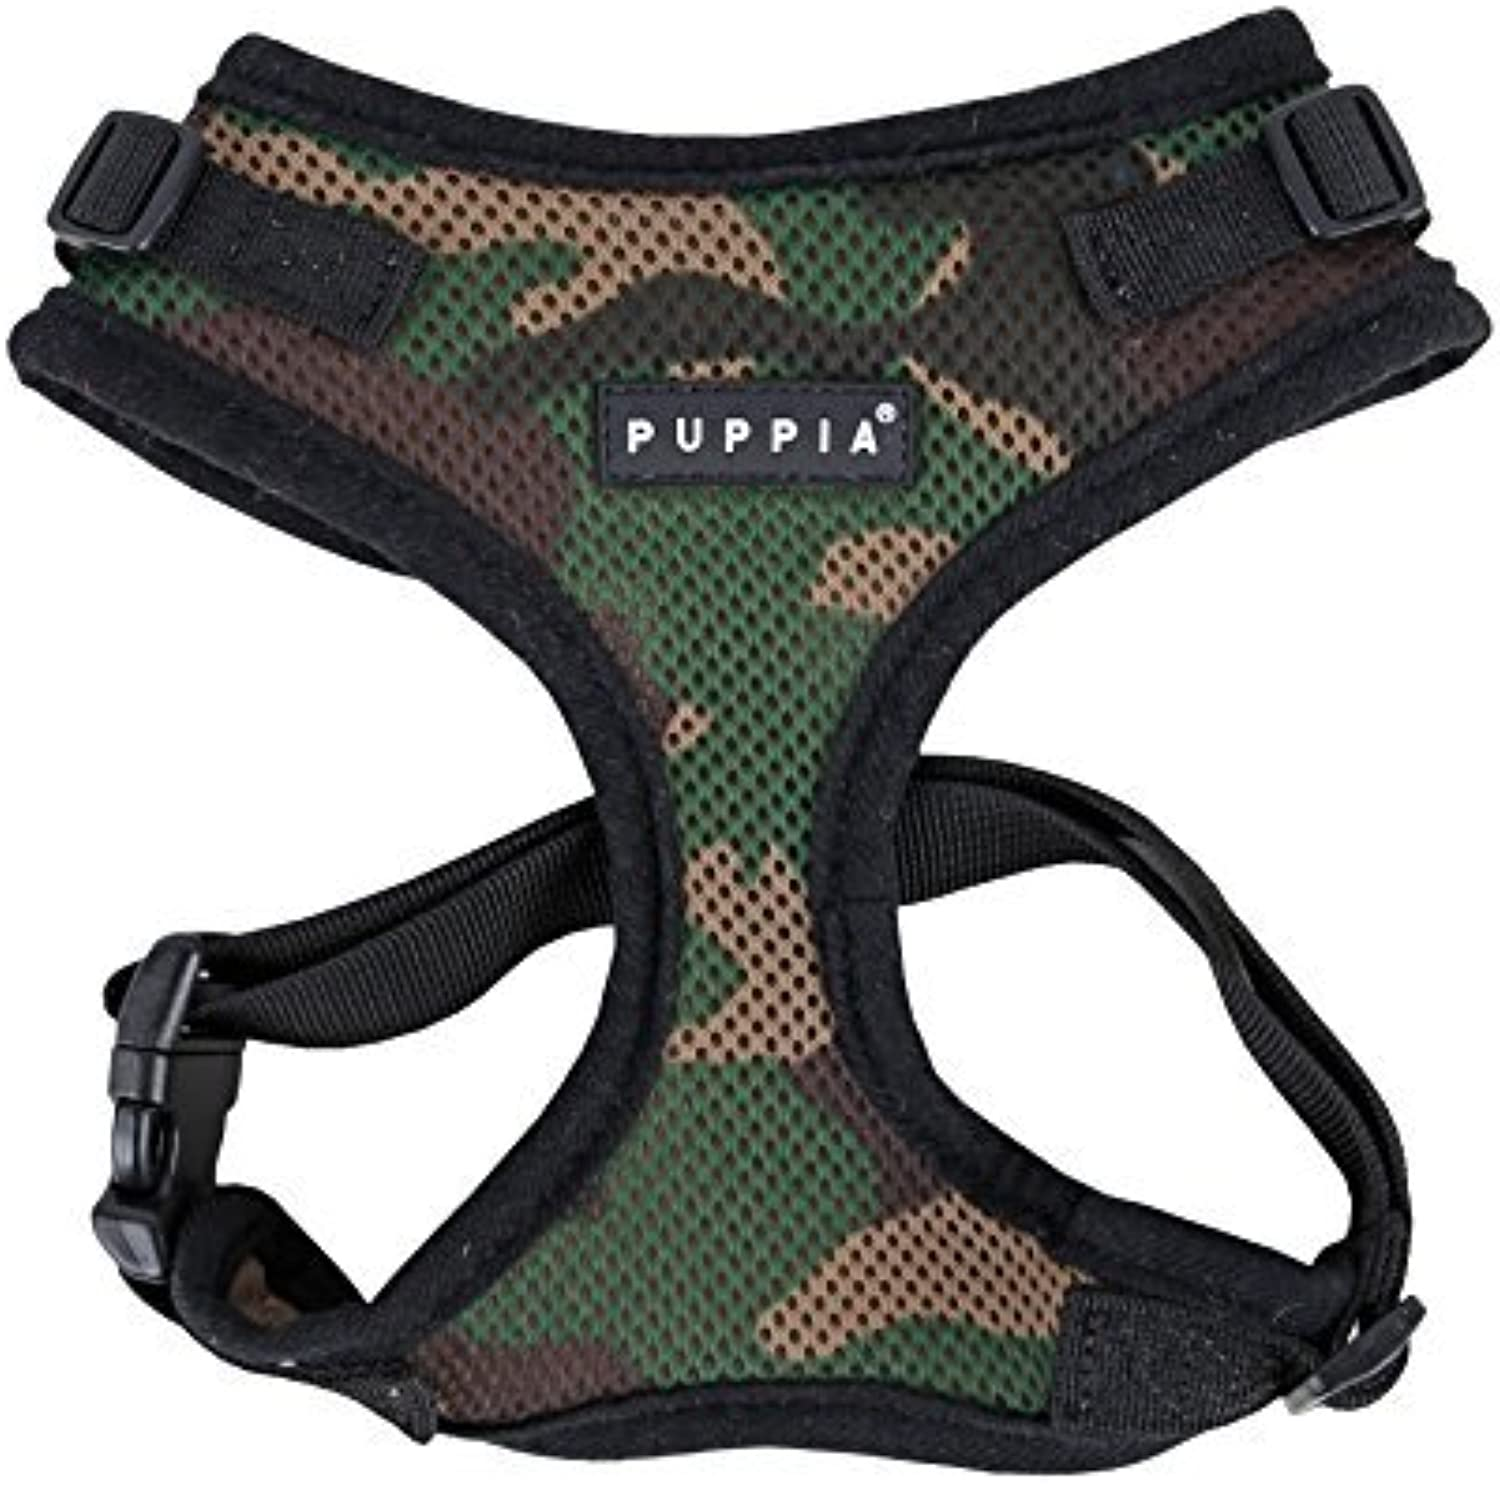 Puppia Authentic Puppia Ritefit Harness With Adjustable Neck, Camo, Small by Puppia